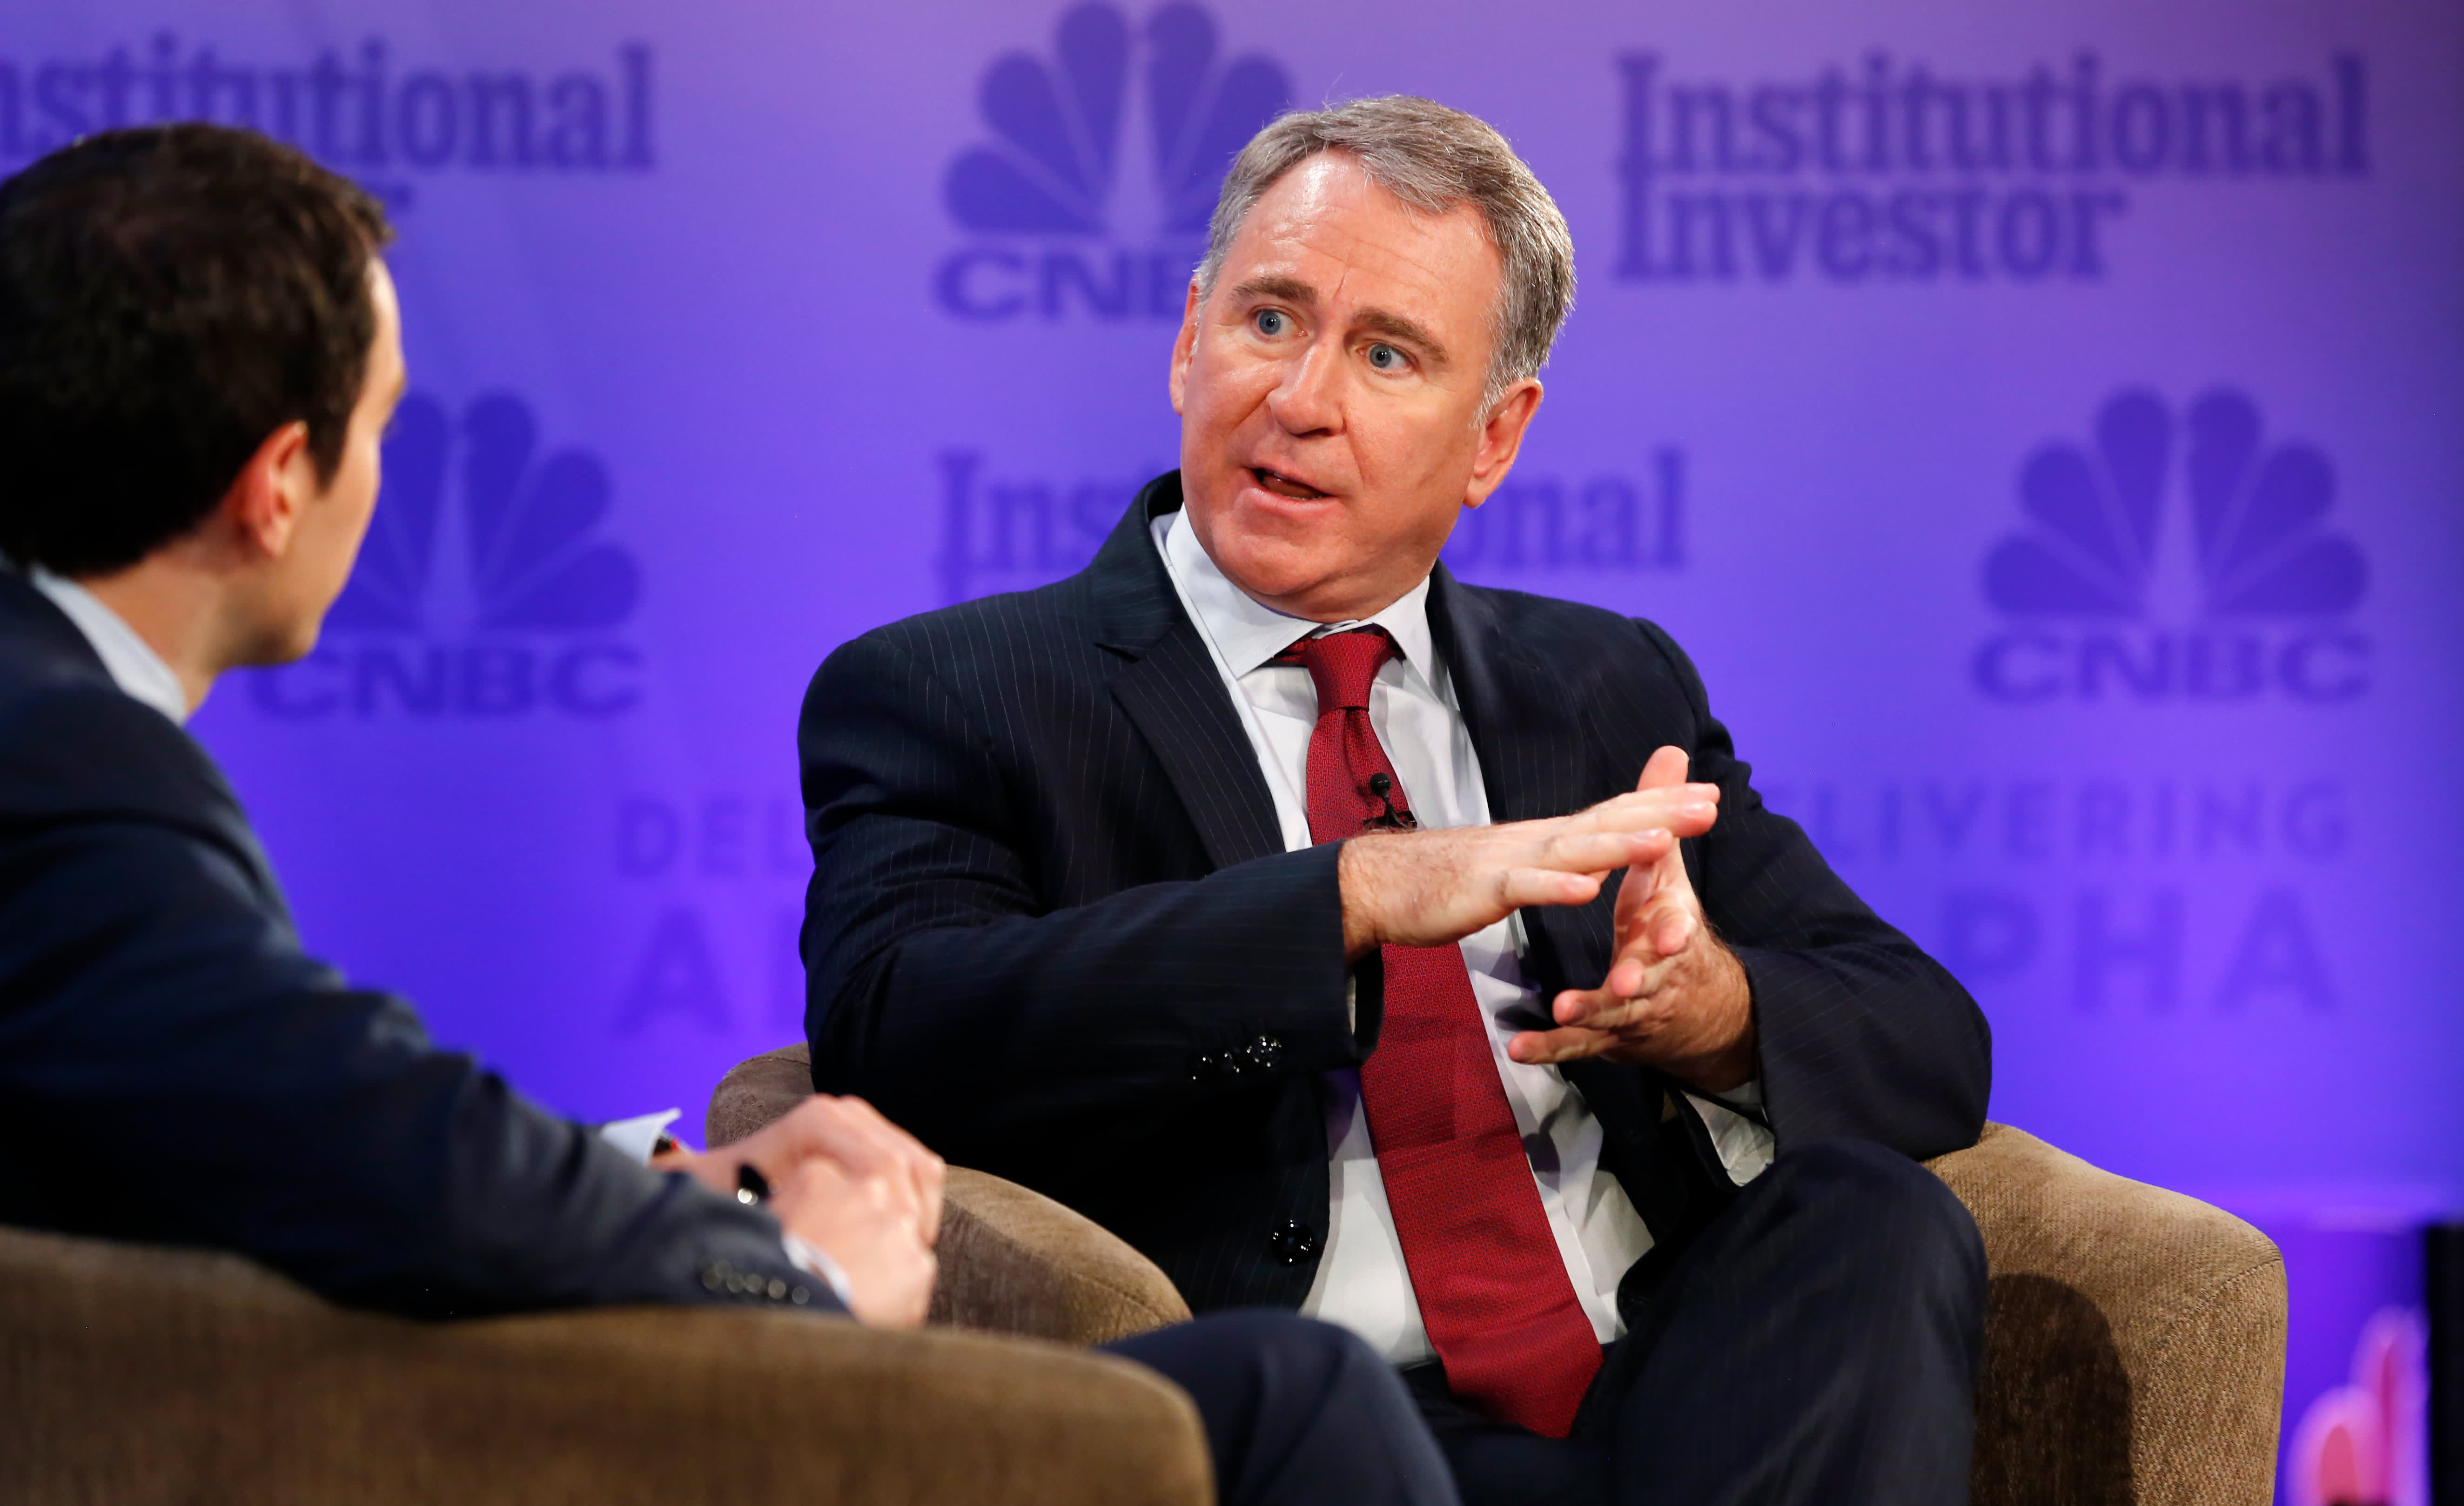 Citadel's Ken Griffin: Blue states must cut taxes